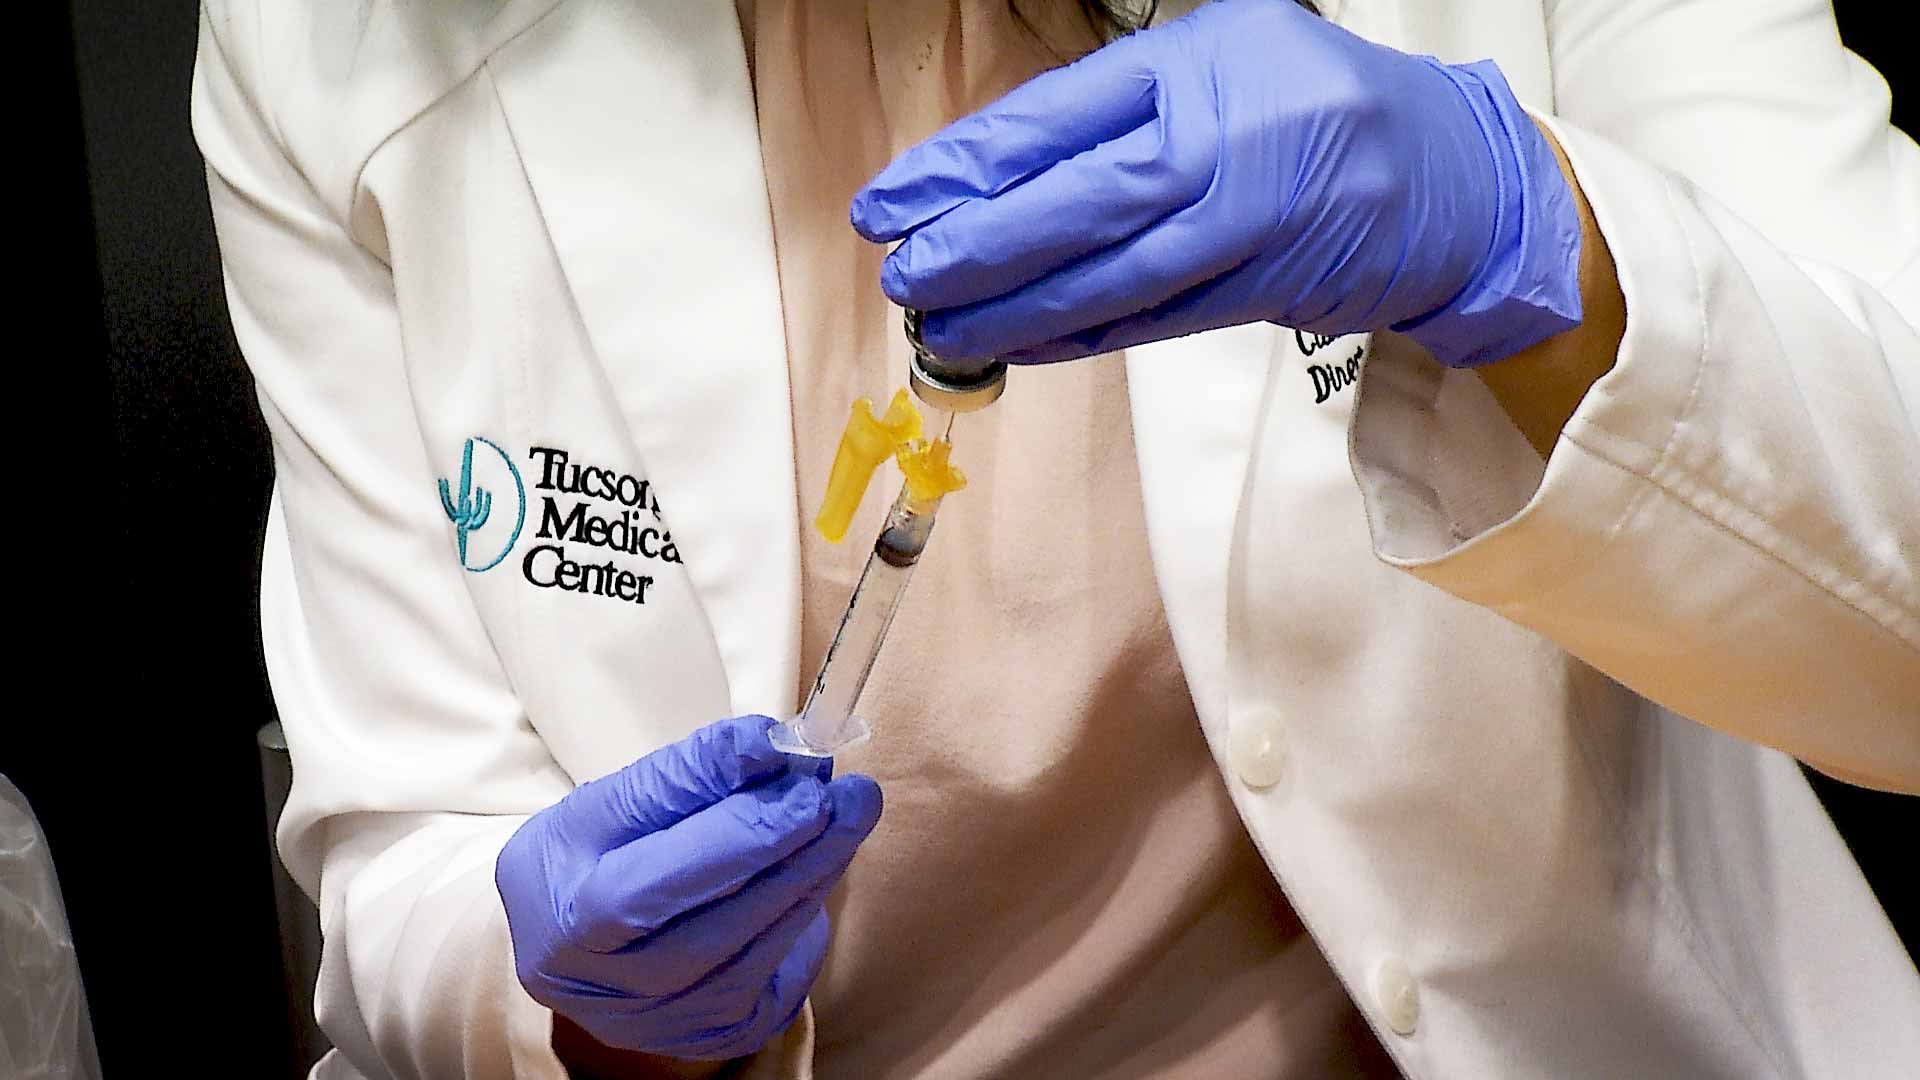 A health care worker at Tucson Medical Center fills a syringe with a dose of the COVID-19 vaccine. January 2021.